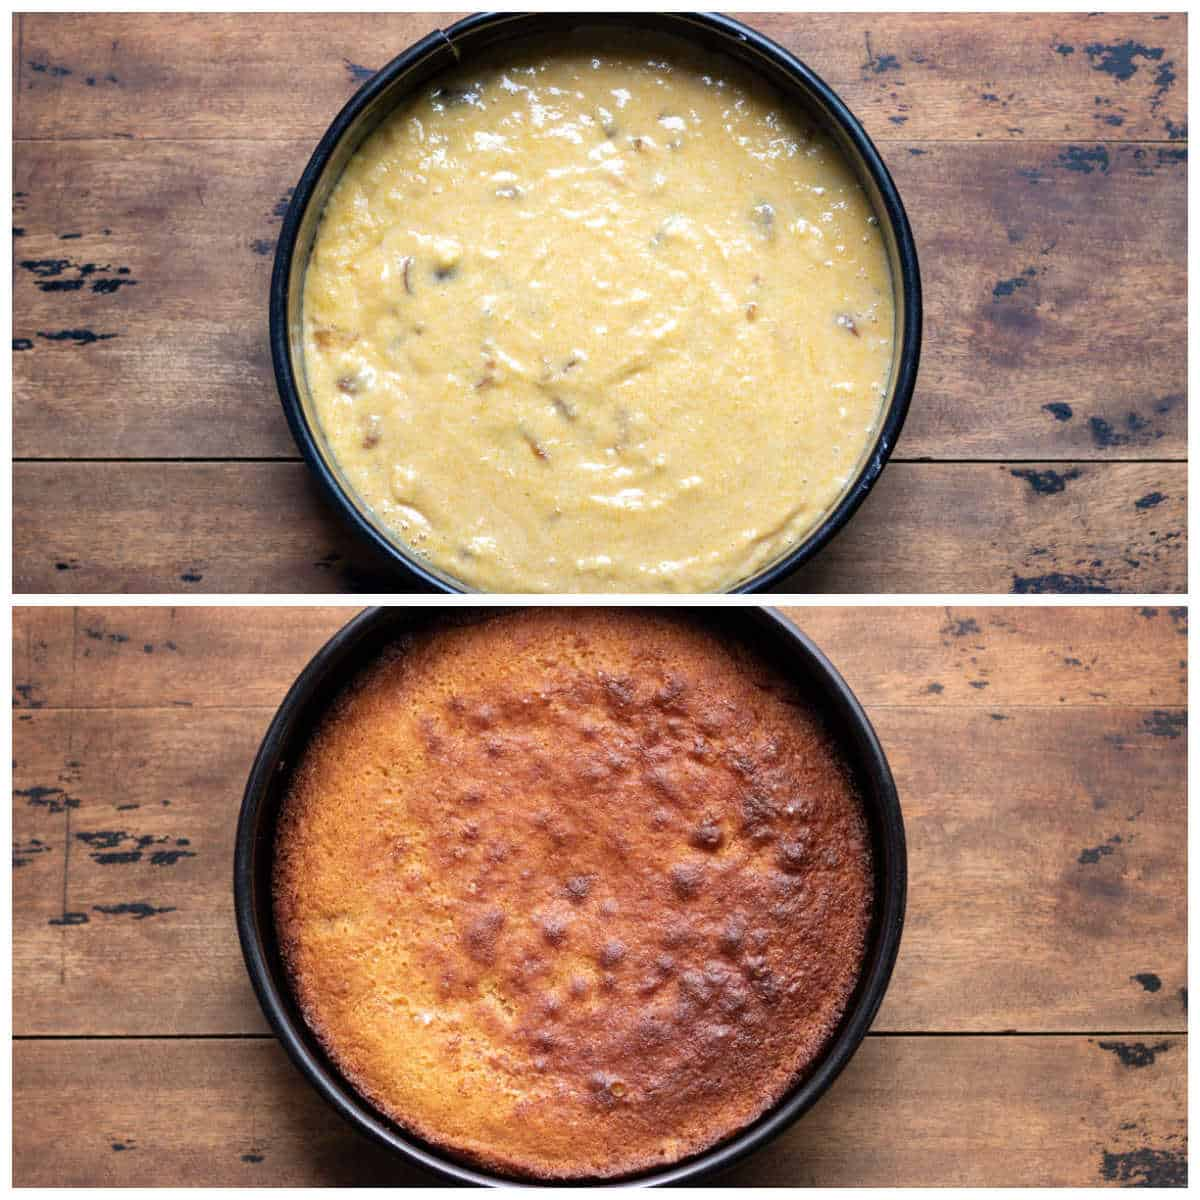 Collage of batter in cake pan and baked cake.